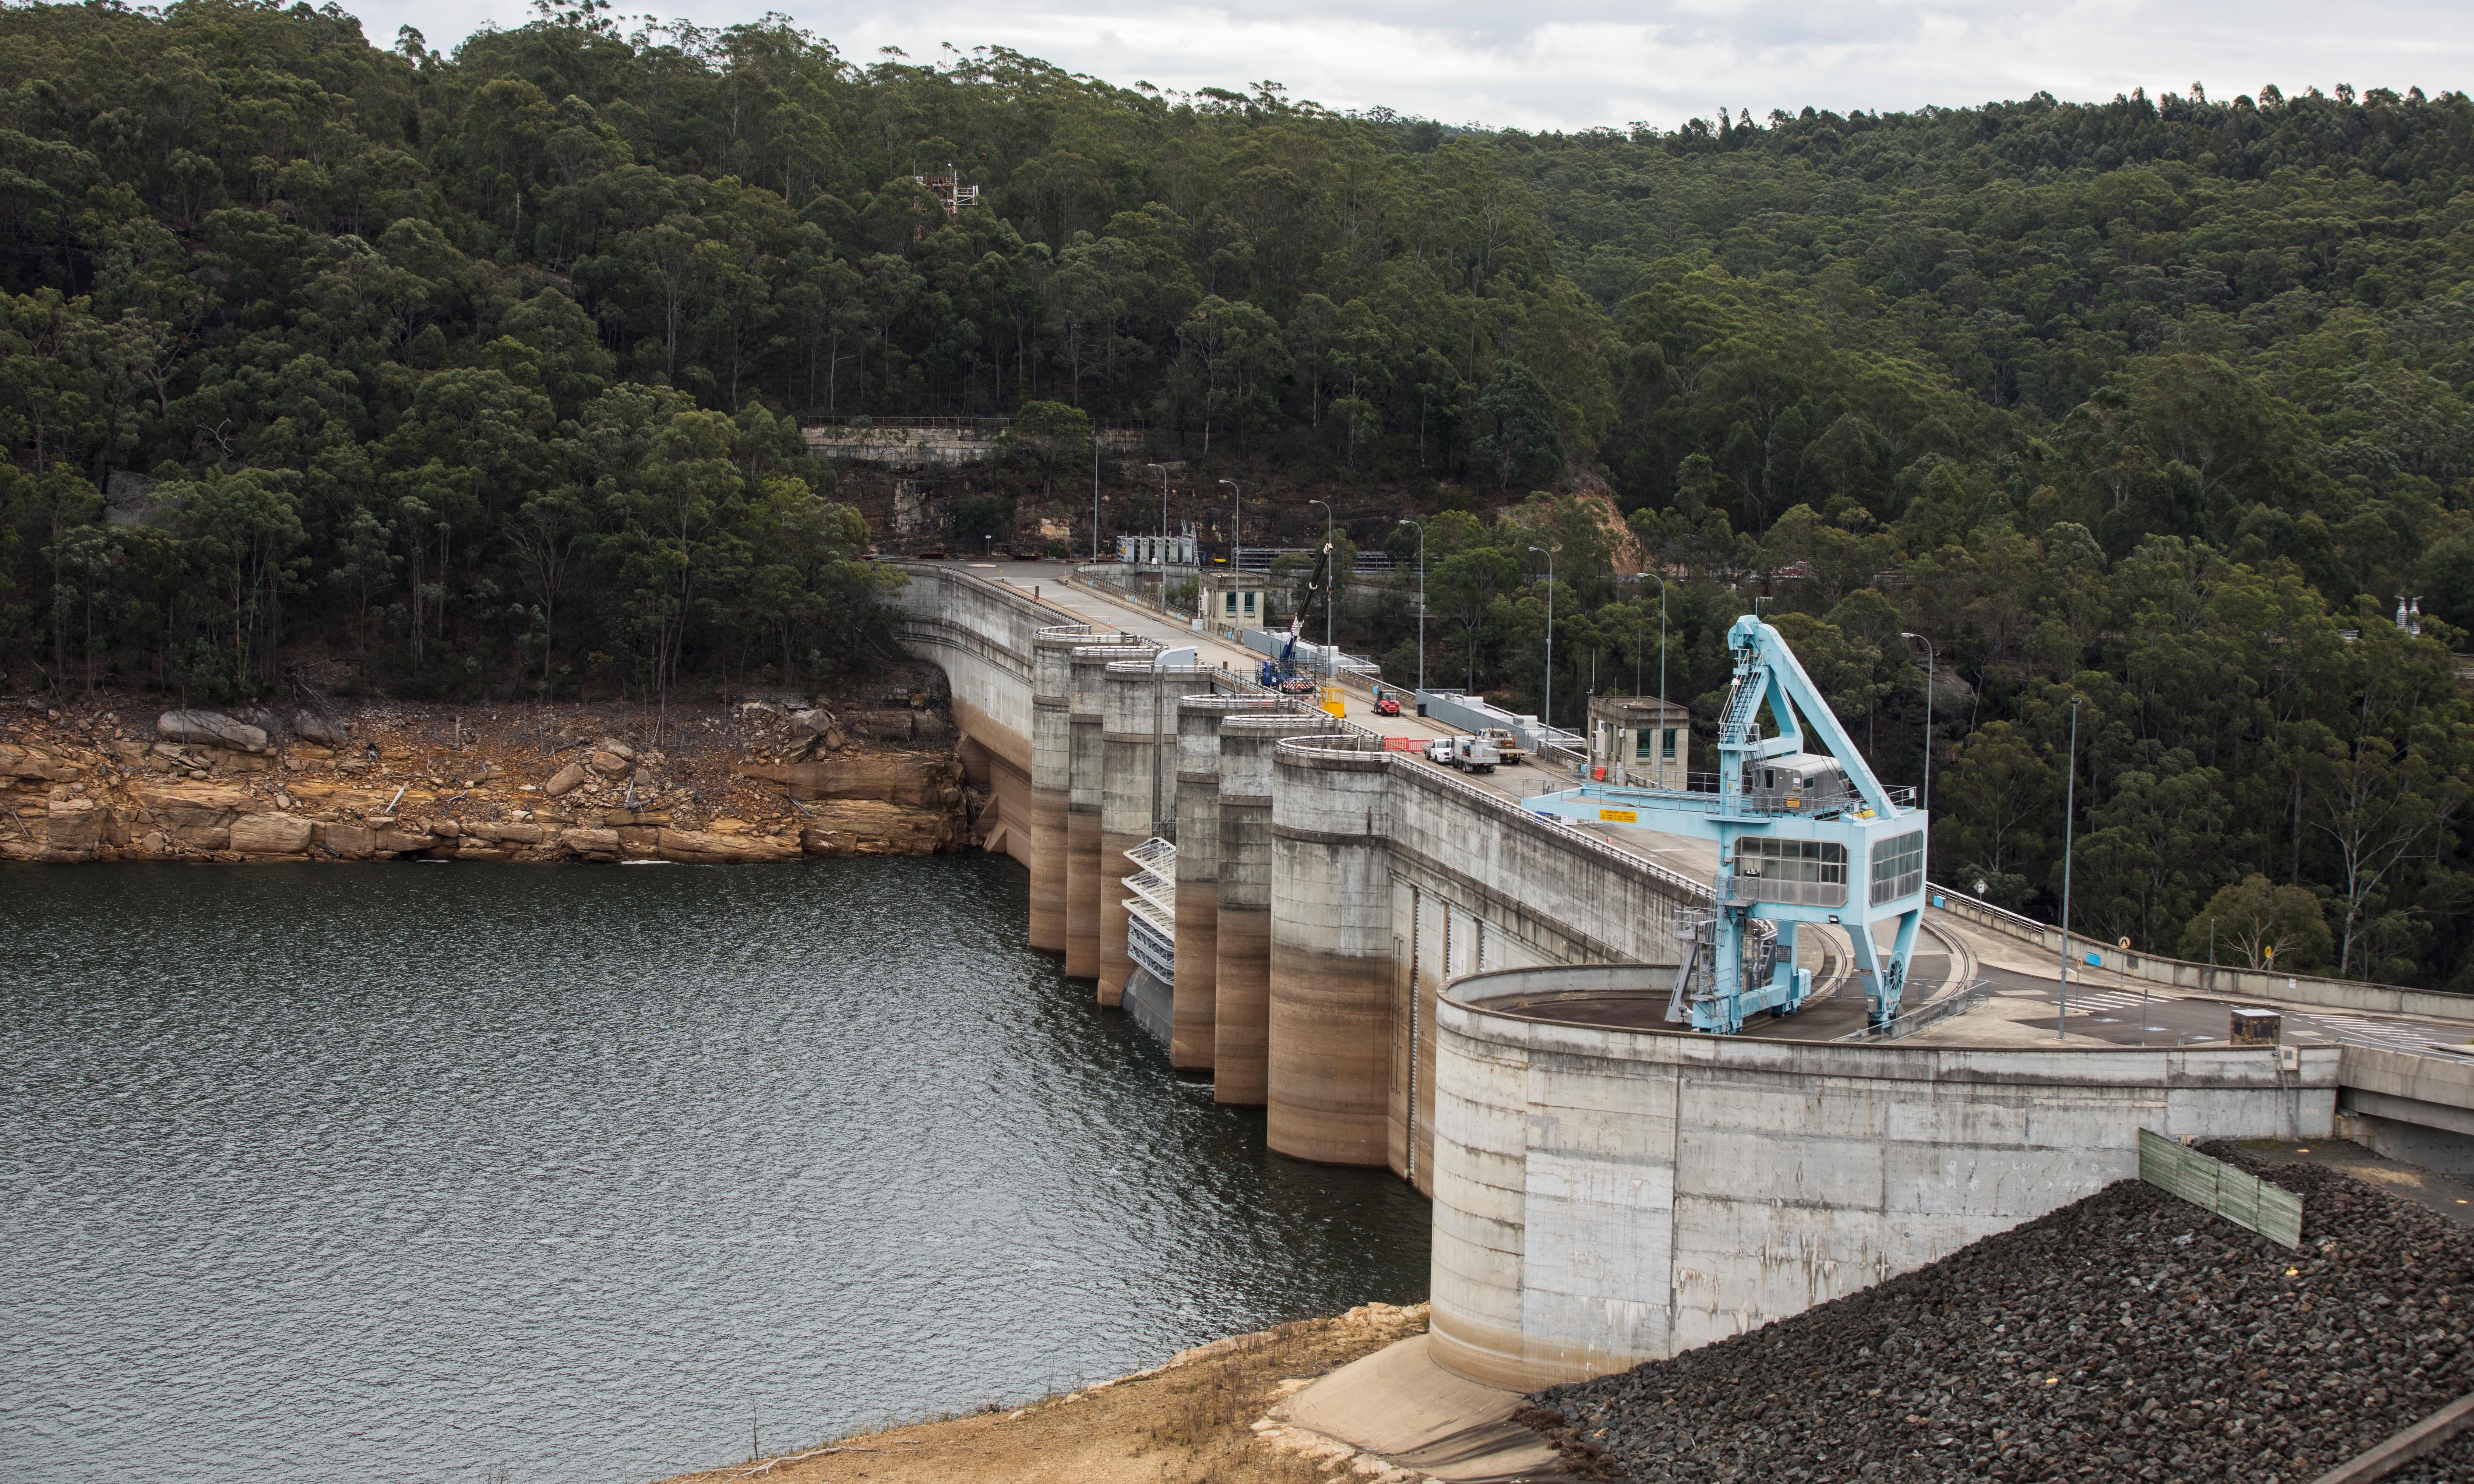 Sydney dam storage level drops below 50% for first time since 2004